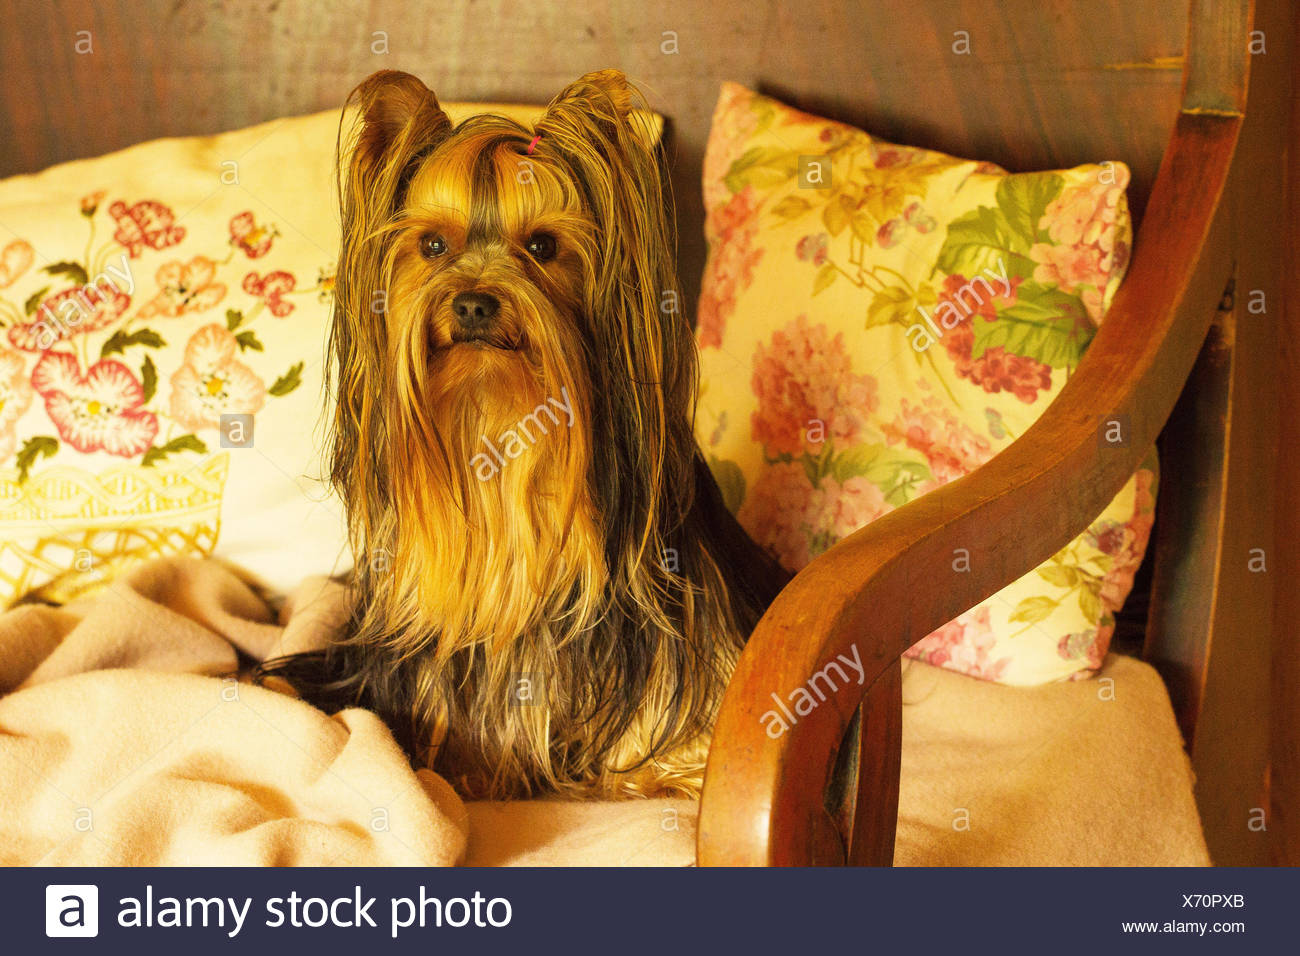 1 animal,Hund,Yorkshire Terrier,animal,beautiful,blanket,couch,cute,divan,dog,dog portrait,eyes,floral cushion,gaze,homely,long hair,look,nostalgia,nostalgic,pet,pillow,pillows,portrait,rural,rustic,shawl,sofa,terrier,vintage,wooden sofa,yorkie - Stock Image